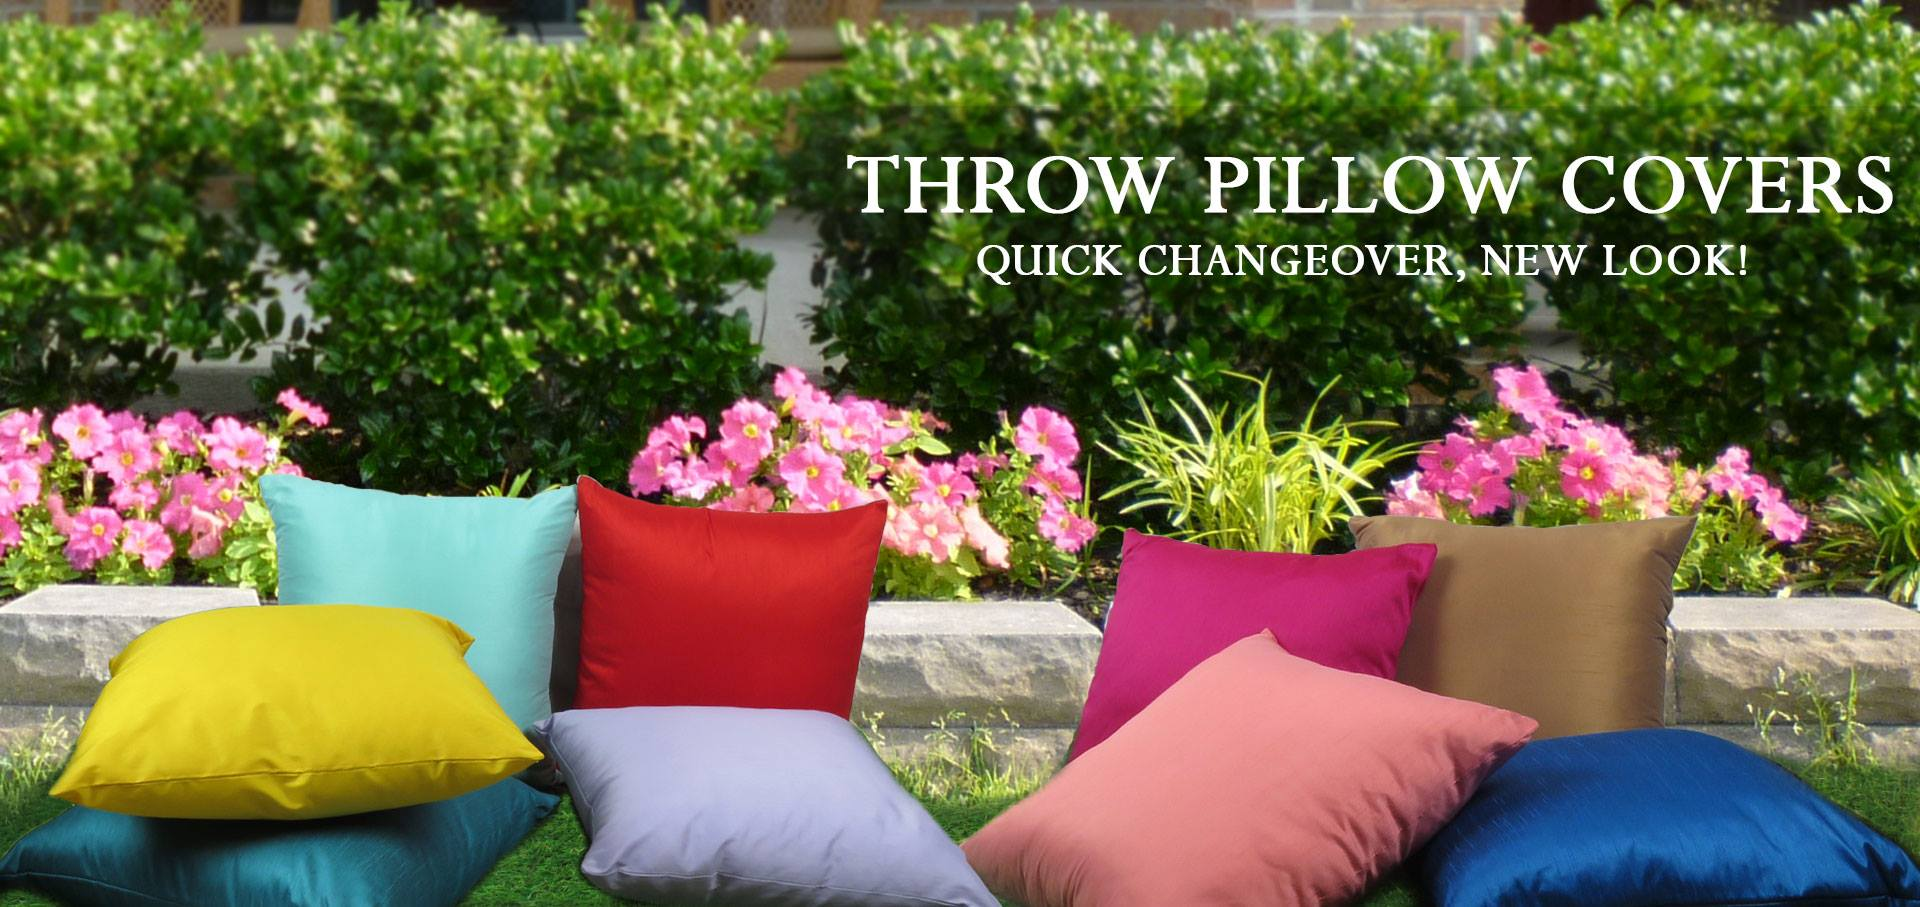 Shop throw pillows